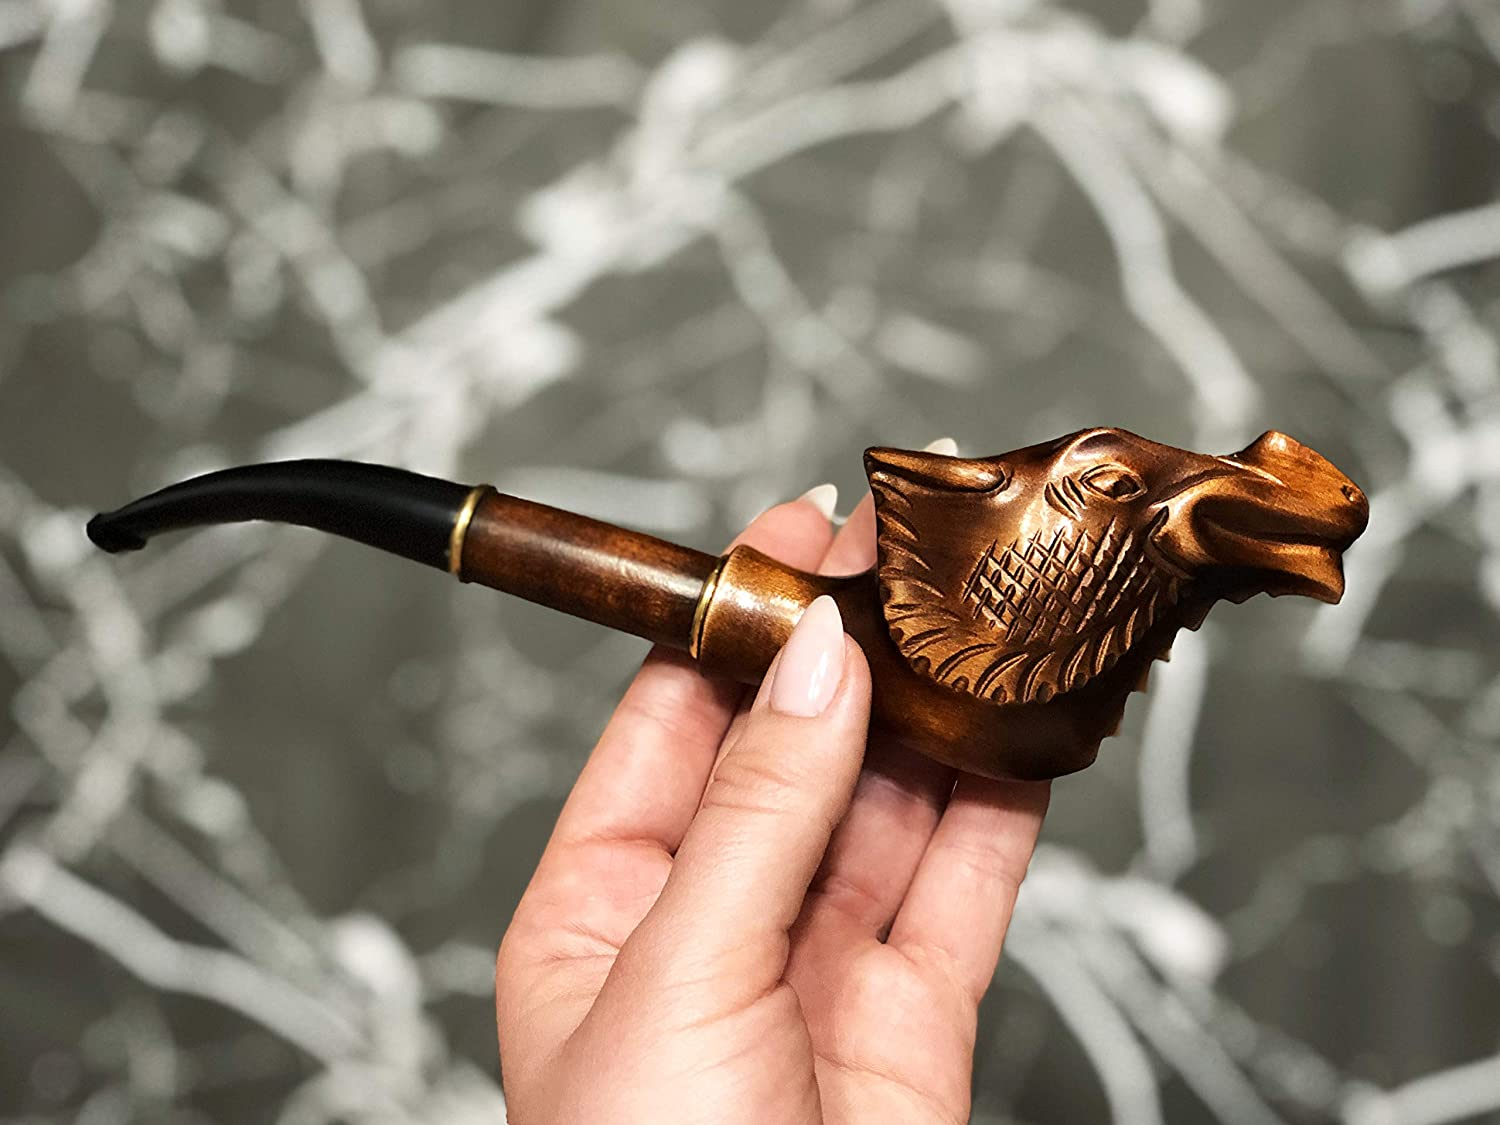 Amazon.com: Wood Carved Pipe Gift for Smokers Collectible Handmade Unique  Pipes Wood Carving Design Smoking Wooden Pipe Tobacco Smoking Pipe for  Tobacco: Handmade